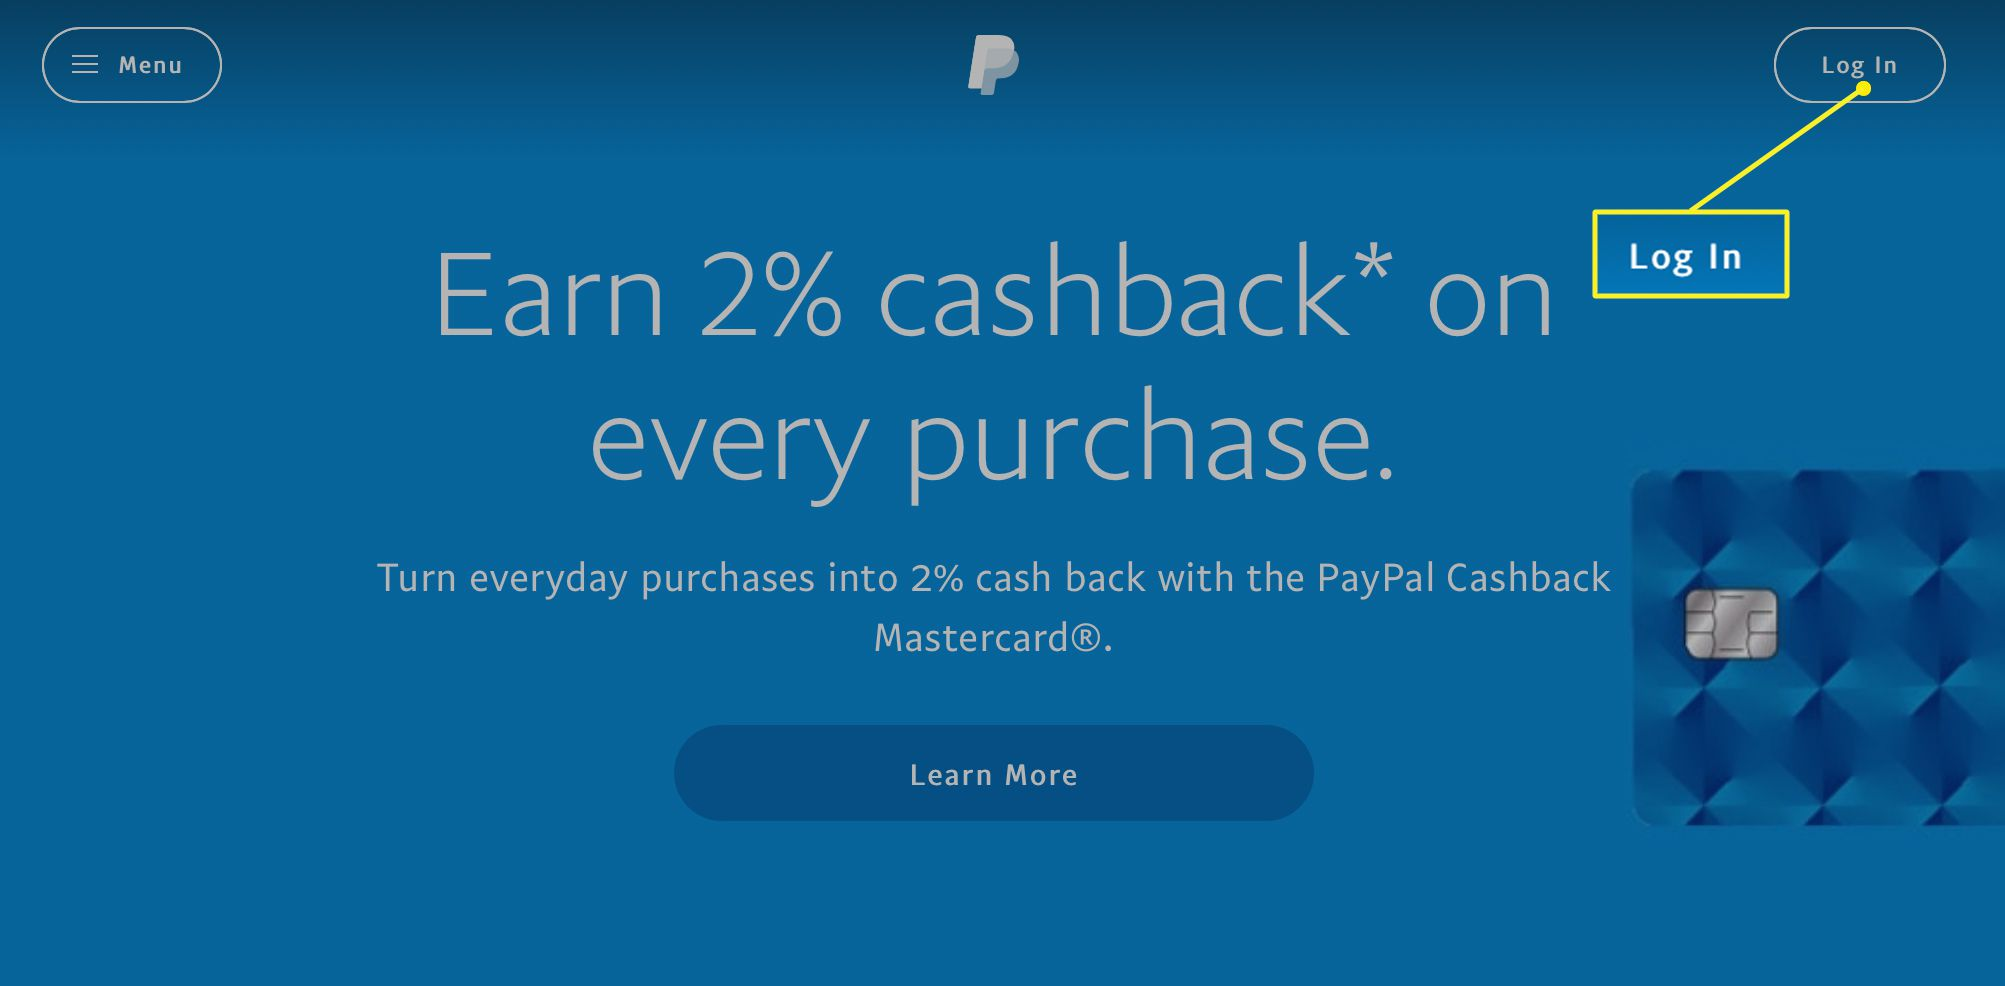 How To Take Money Out Of Paypal Instantly